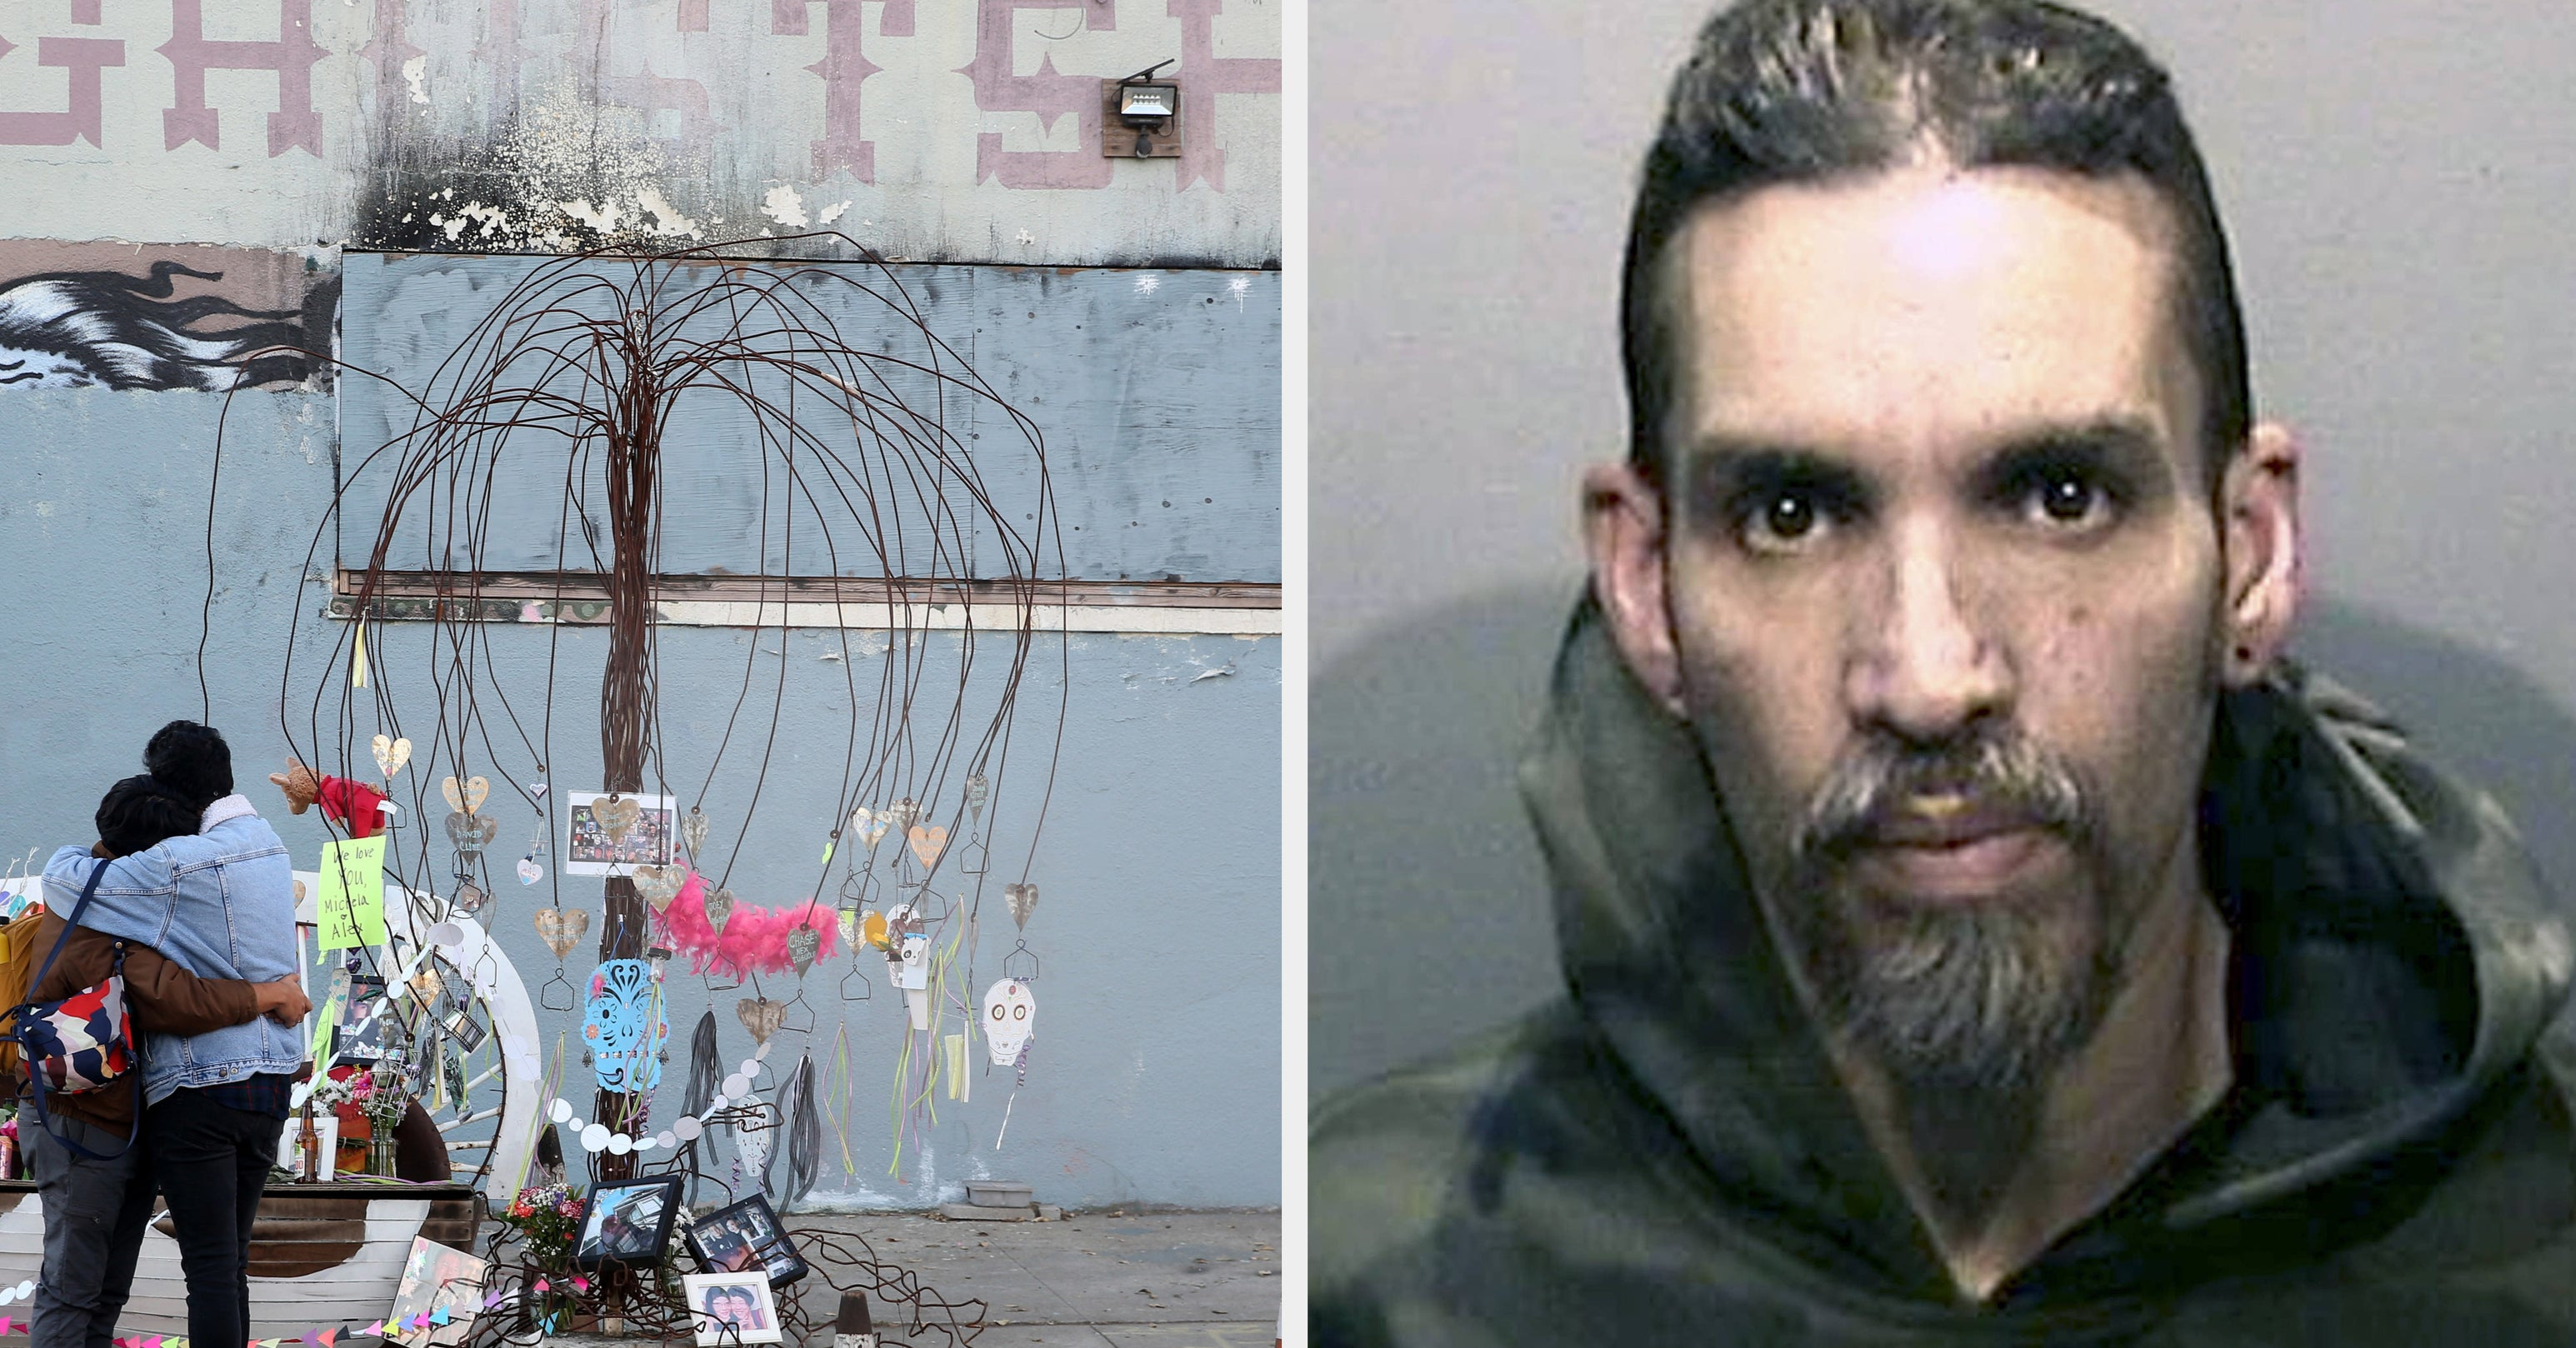 The Master Tenant Of The Ghost Ship Warehouse, Where 36 People Died In A Fire, Has Pleaded Guilty